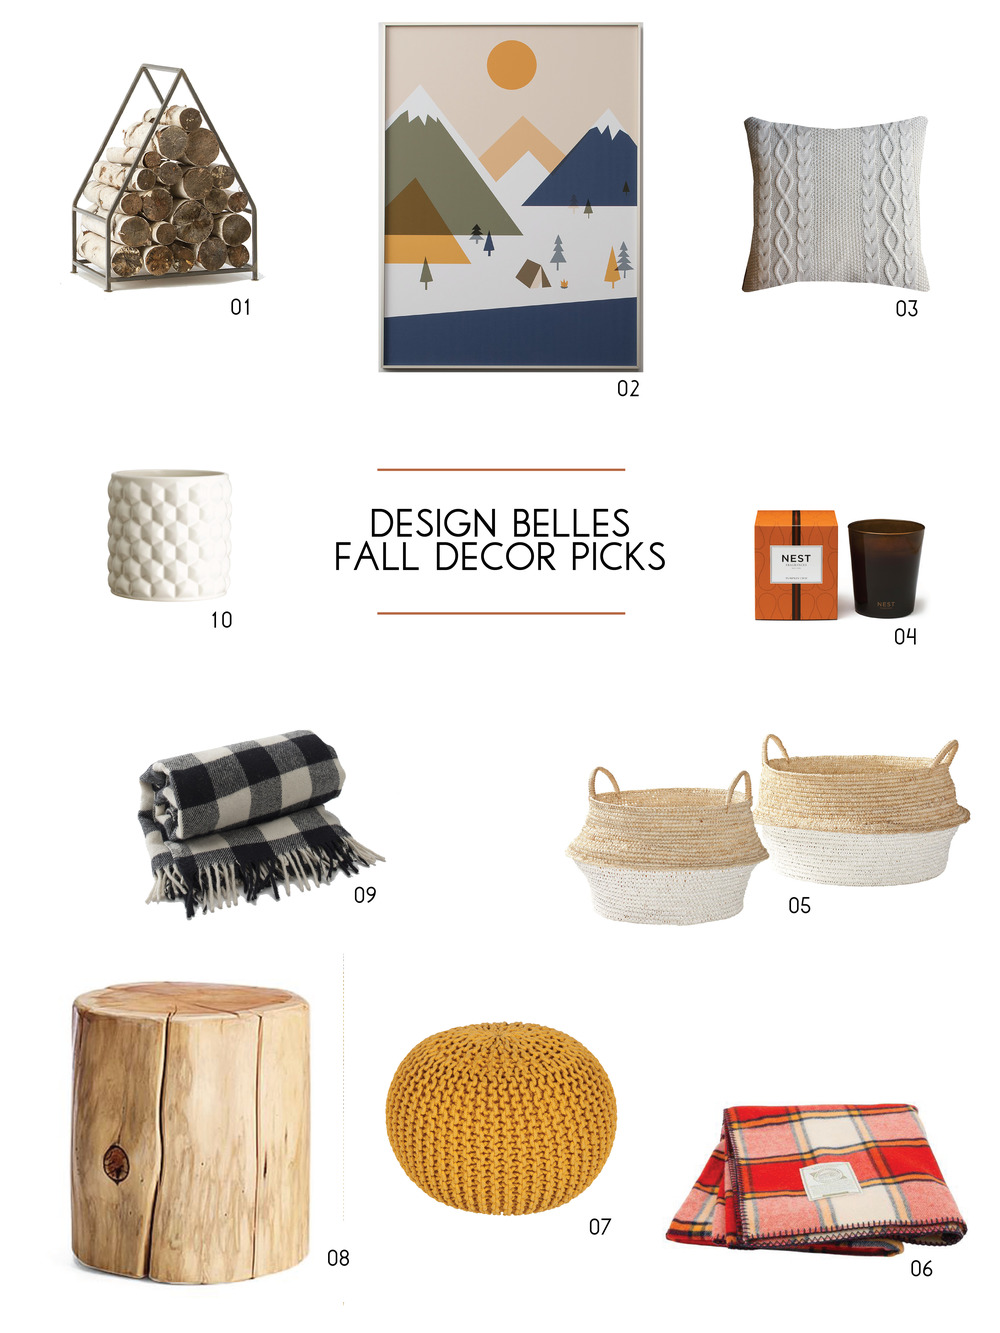 2015 Fall Decor Picks